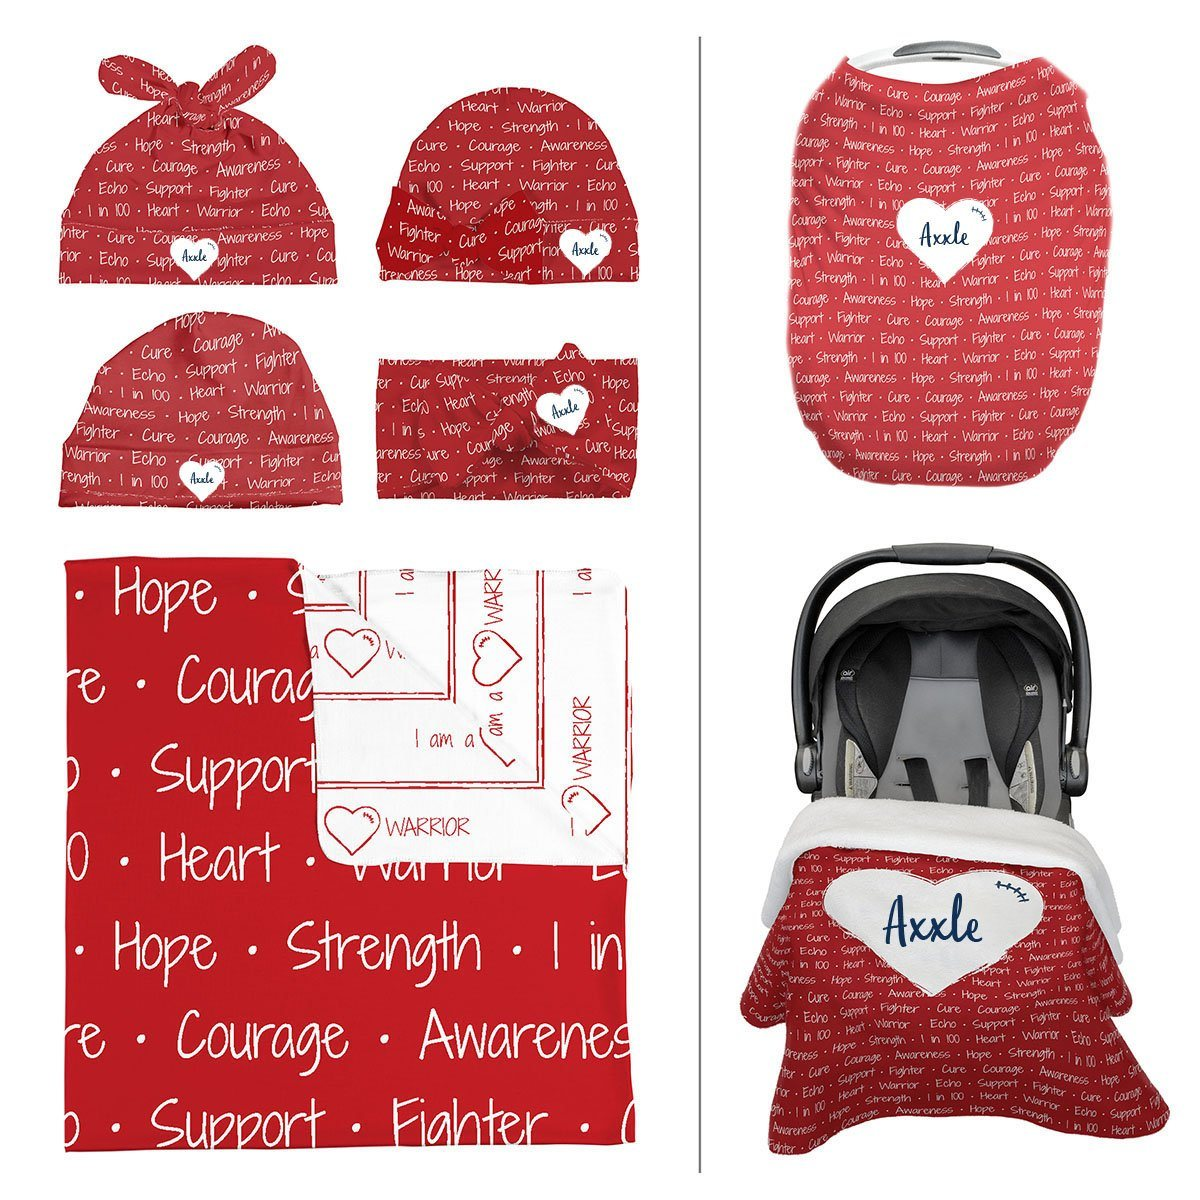 Axxle's Heart Warrior | Take Me Home Bundle